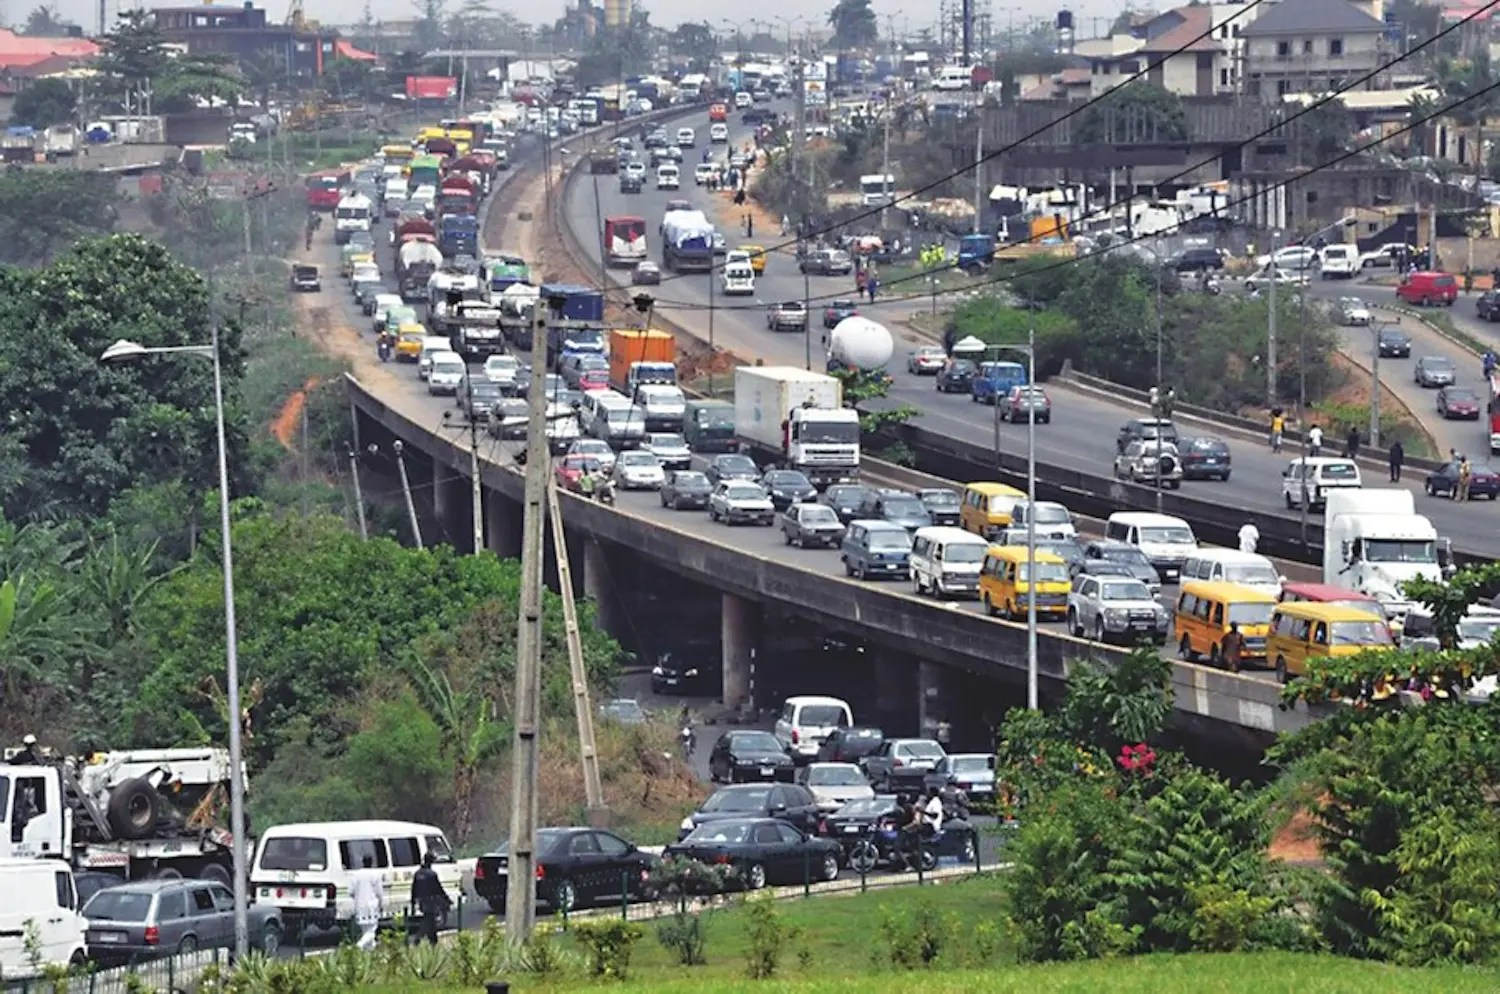 4 months closure of Lagos-Ibadan Expressway : LASG allays fear of motorists - Vanguard